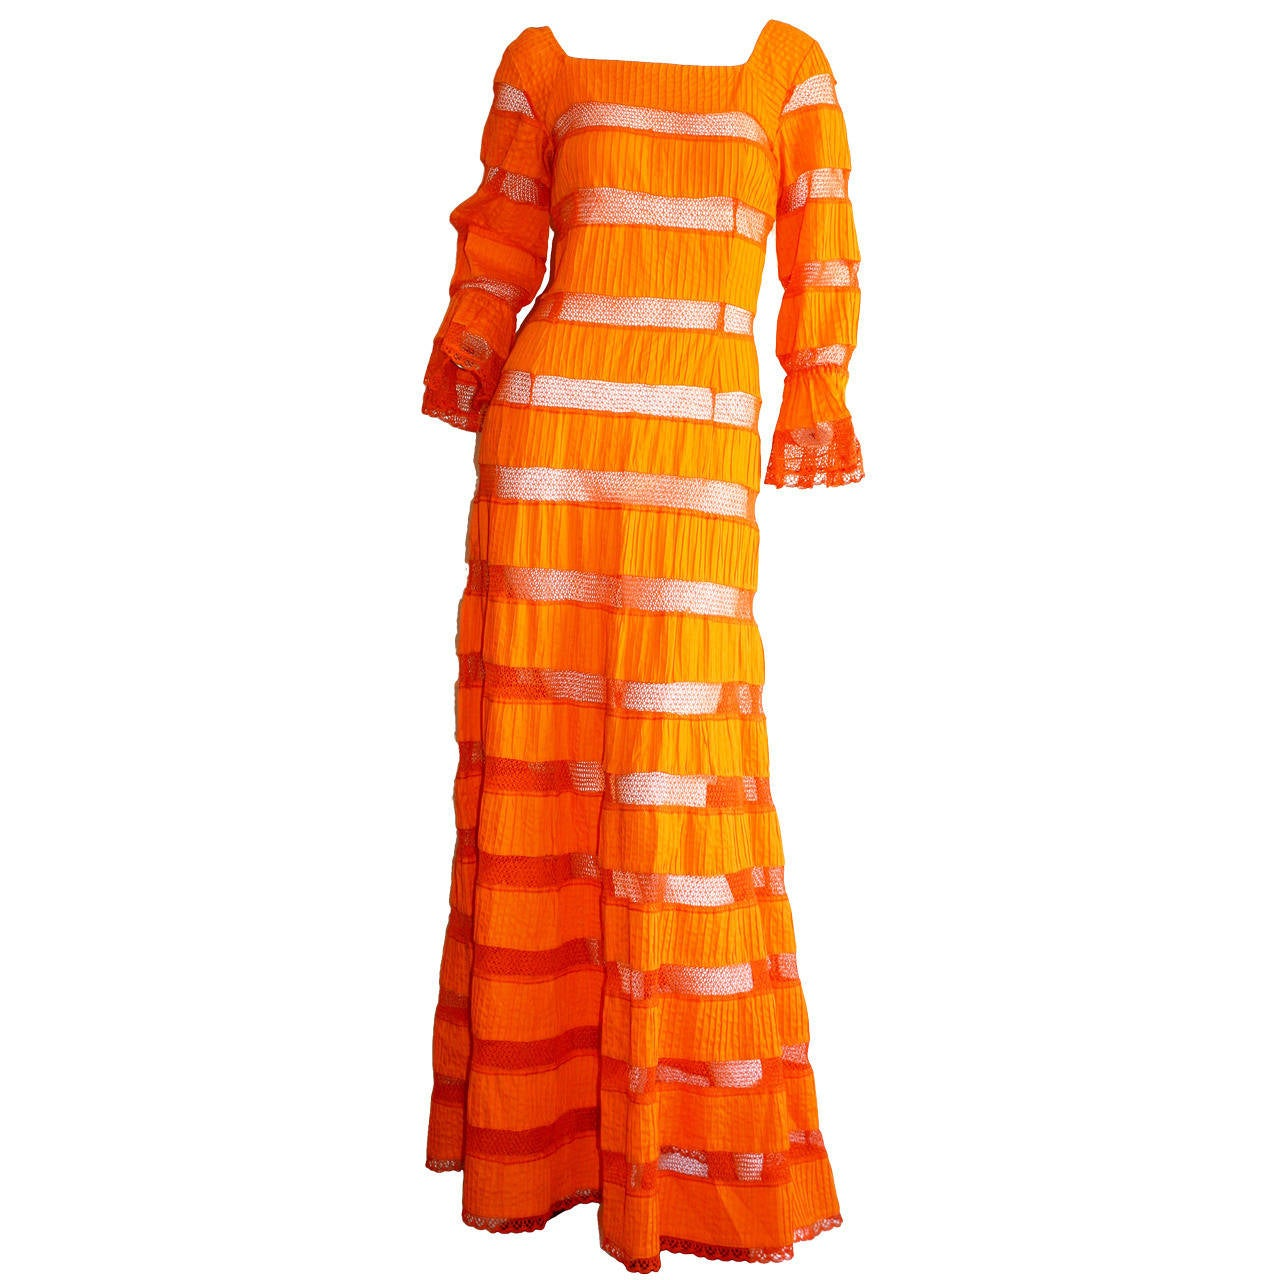 Tachi Castillo Vintage 1970s Orange Cotton Crochet Mexican Maxi Dress 1